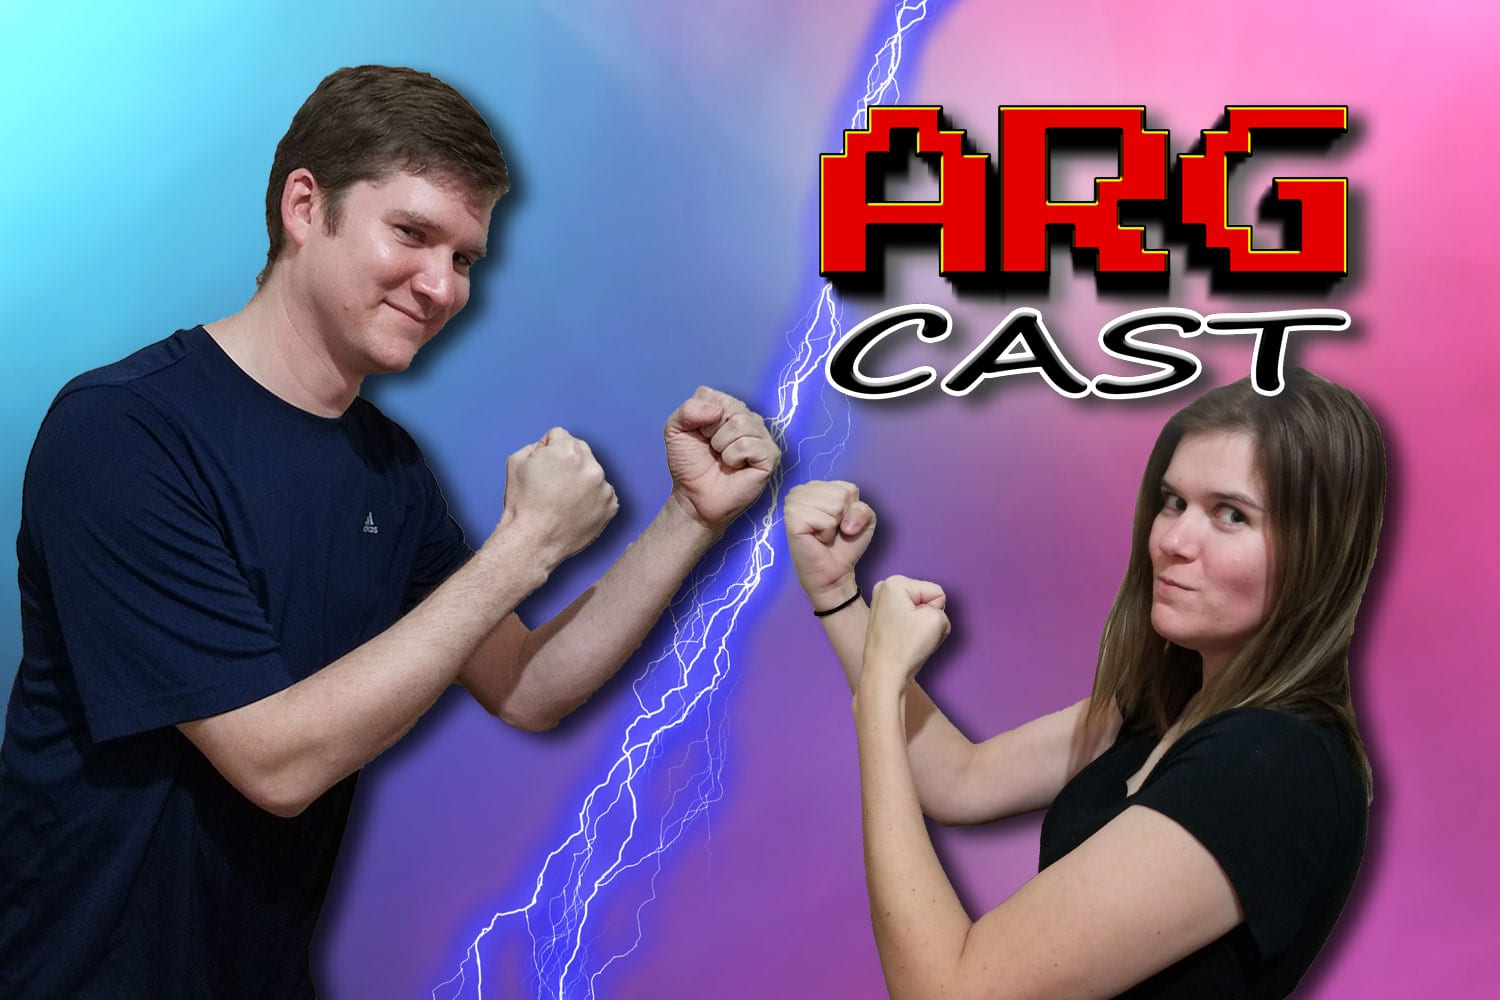 ARGcast #139: Gaming With Siblings with Ross and Elaine Jaynes